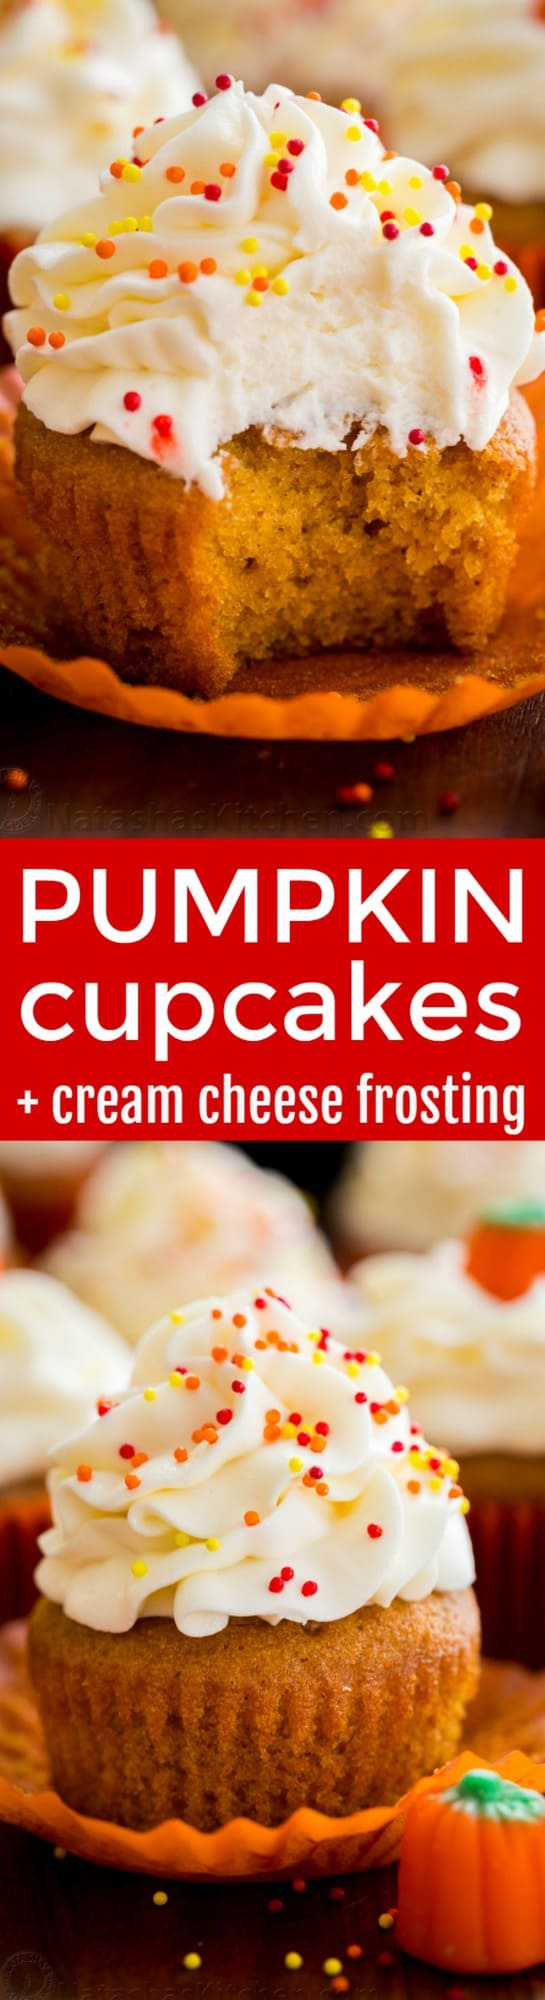 The only pumpkin cupcakes recipe you need! Moist, melt-in-your mouth soft pumpkin cupcakes. Cream cheese frosting is easy and tastes like marshmallow cream. | natashaskitchen.com